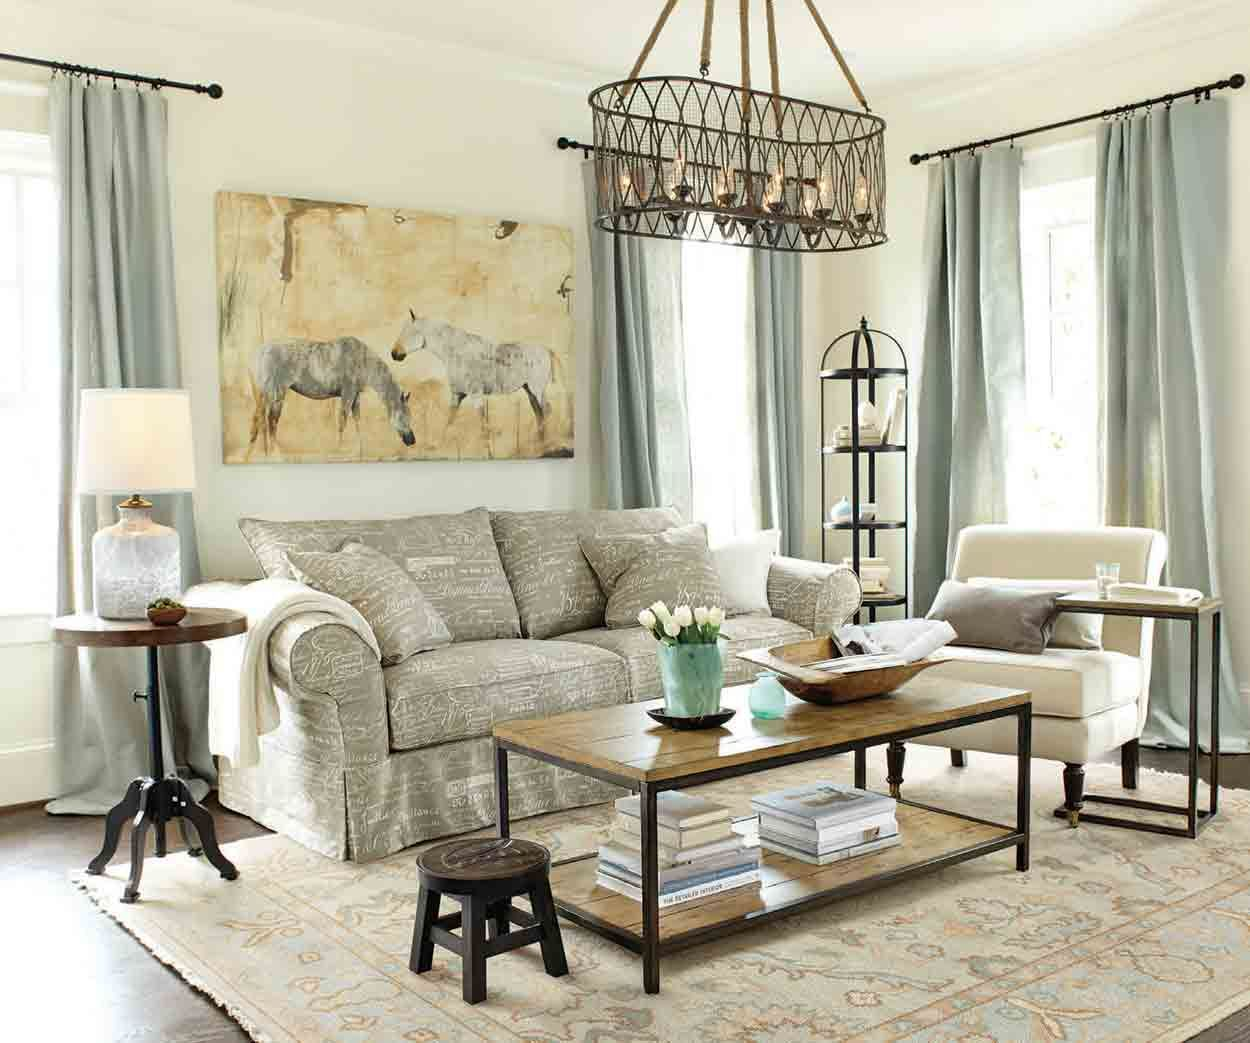 living rooms ideas for decorating in 2020 interior wall on interior wall colors ideas id=19967